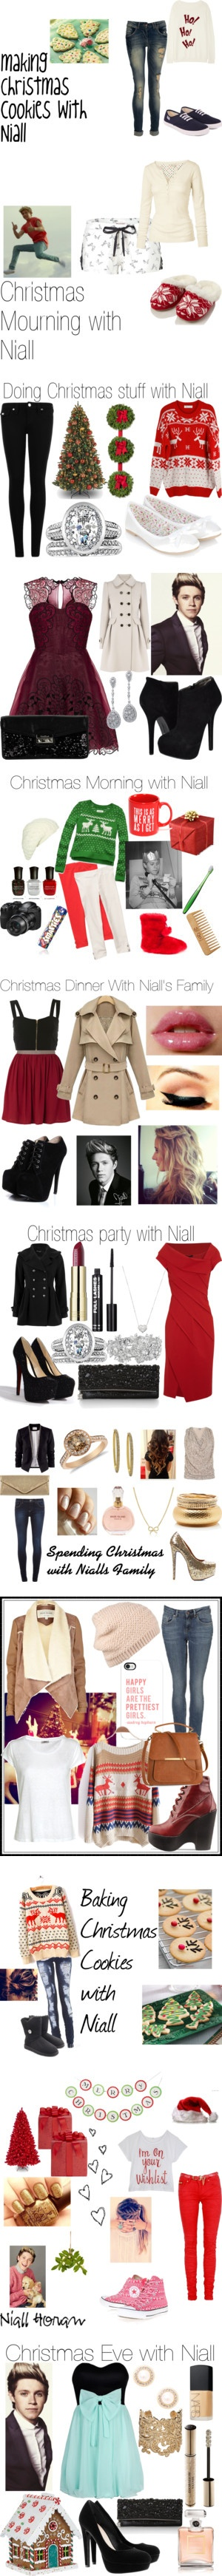 """""""Christmas with my little snowflake, Niall Horan"""" by theprincessofla ❤ liked on Polyvore"""